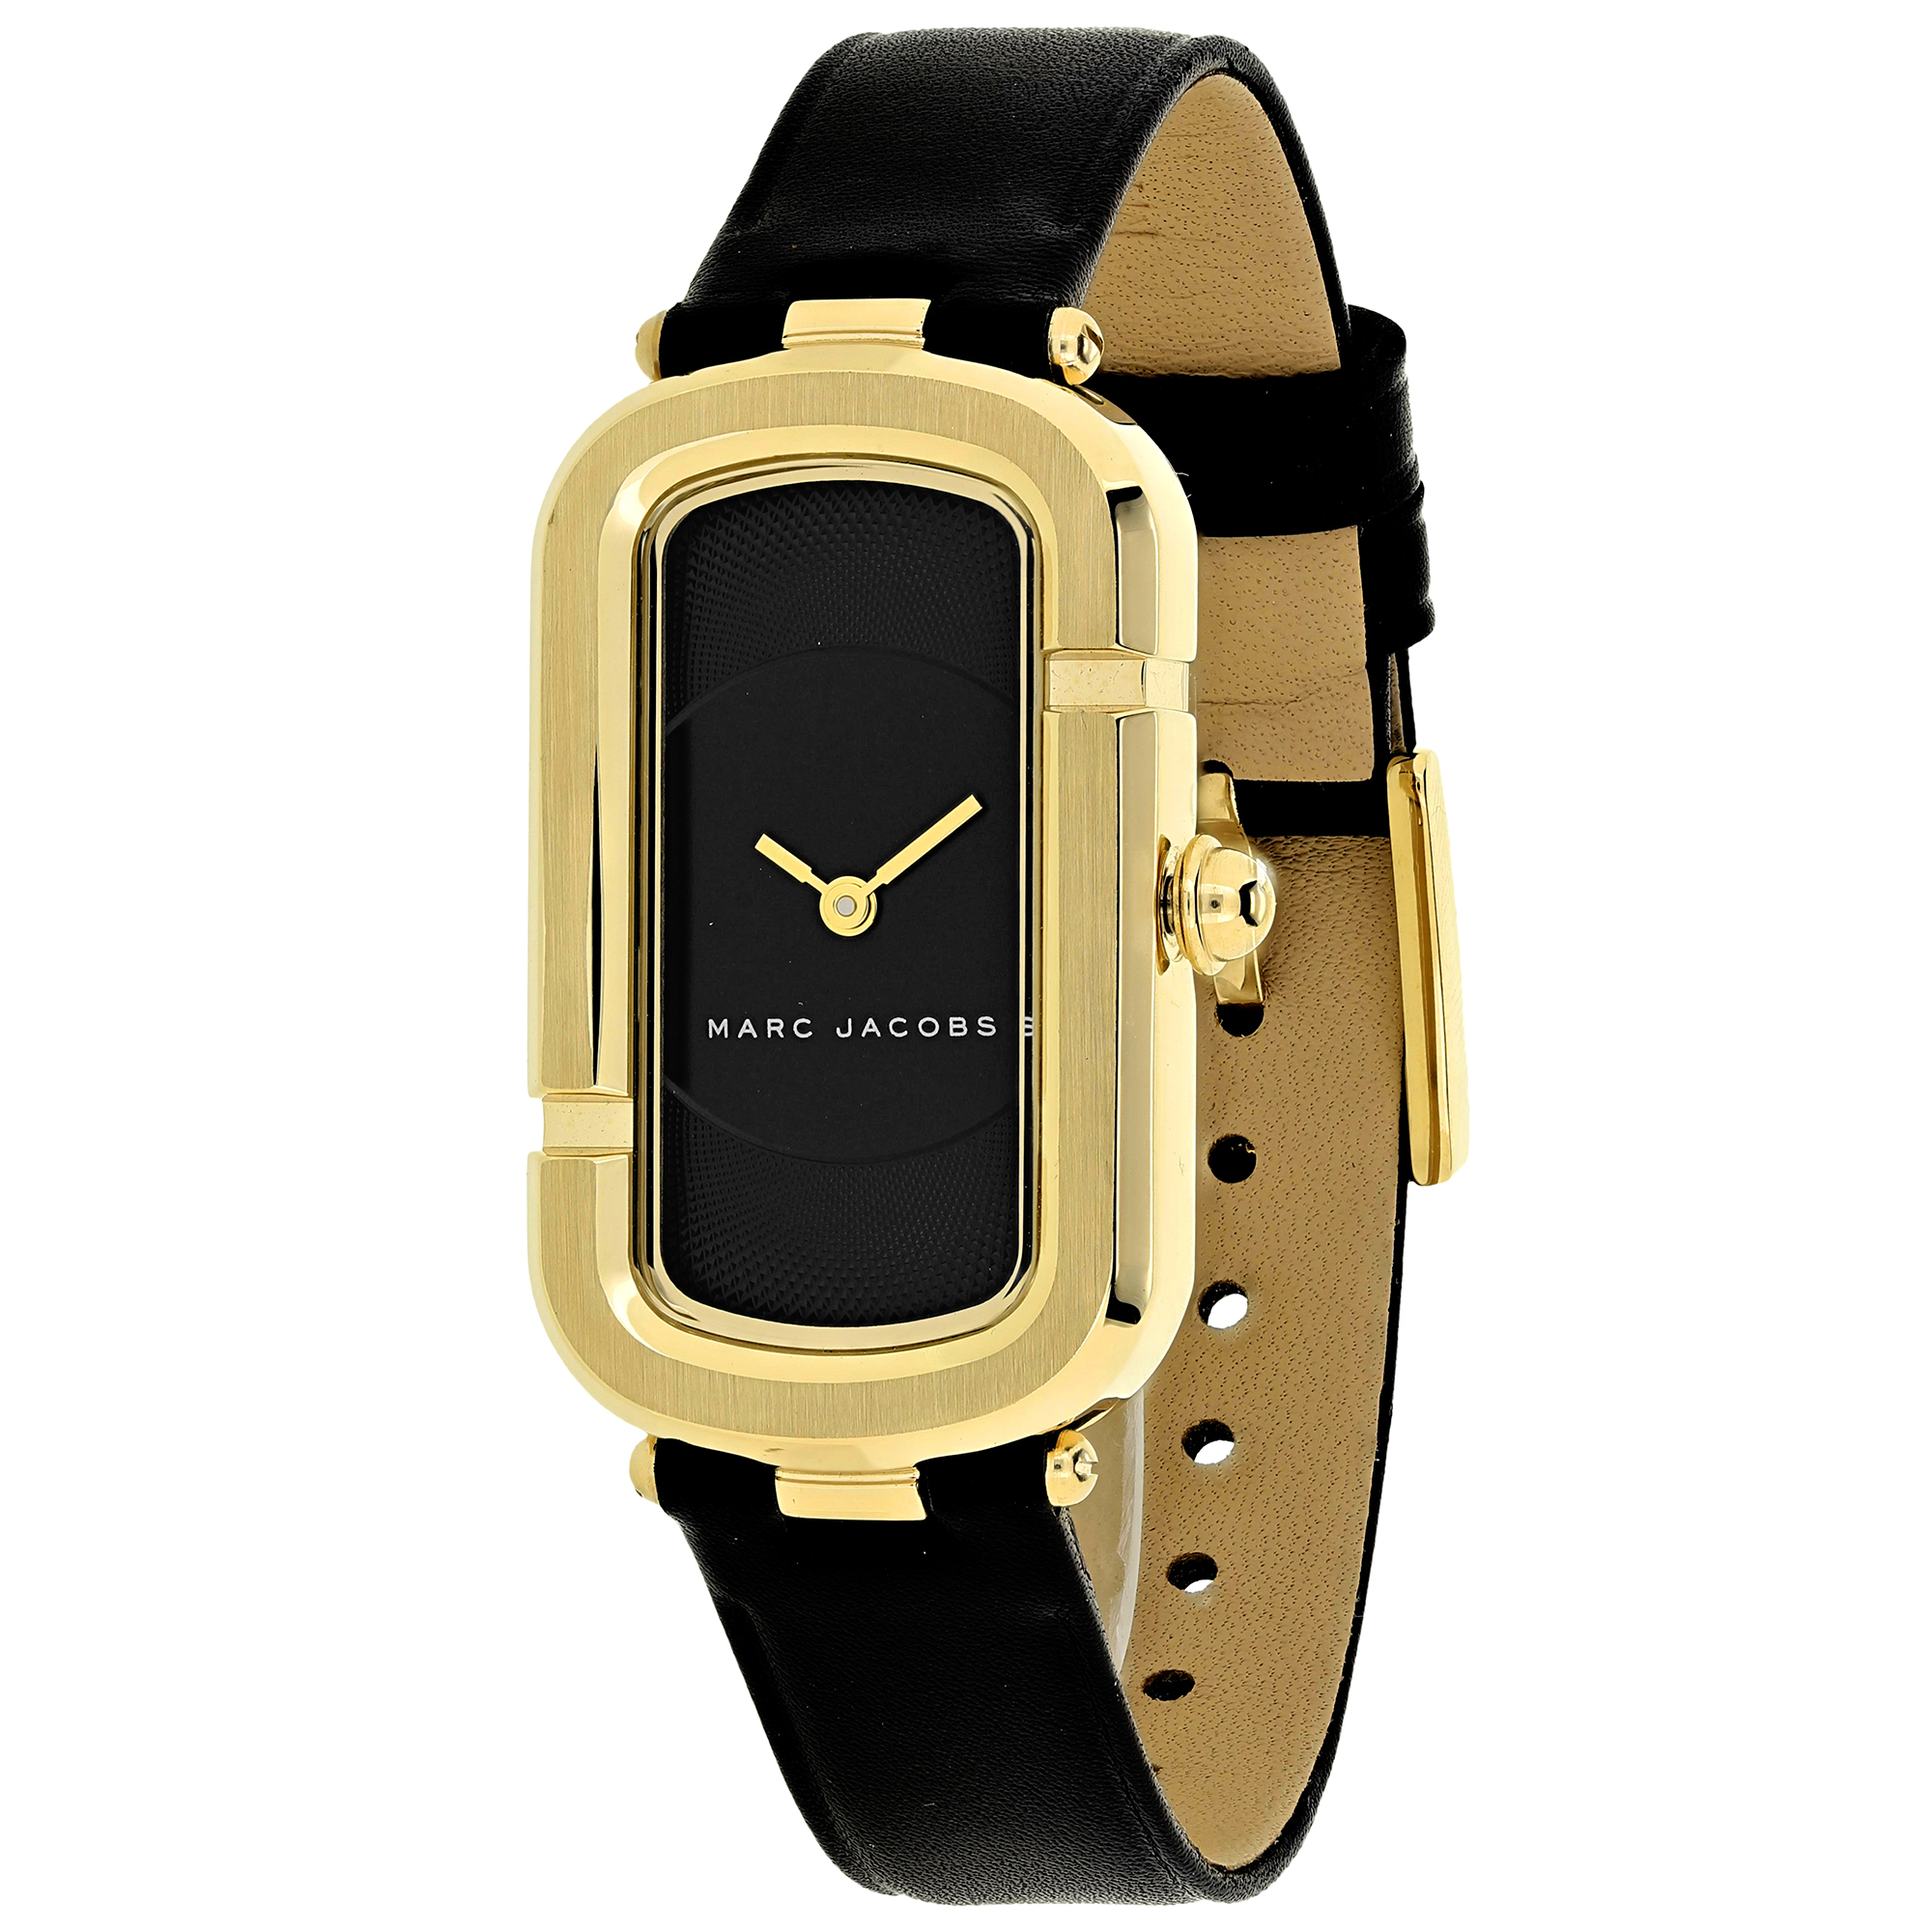 Monogram Watch by Marc Jacobs